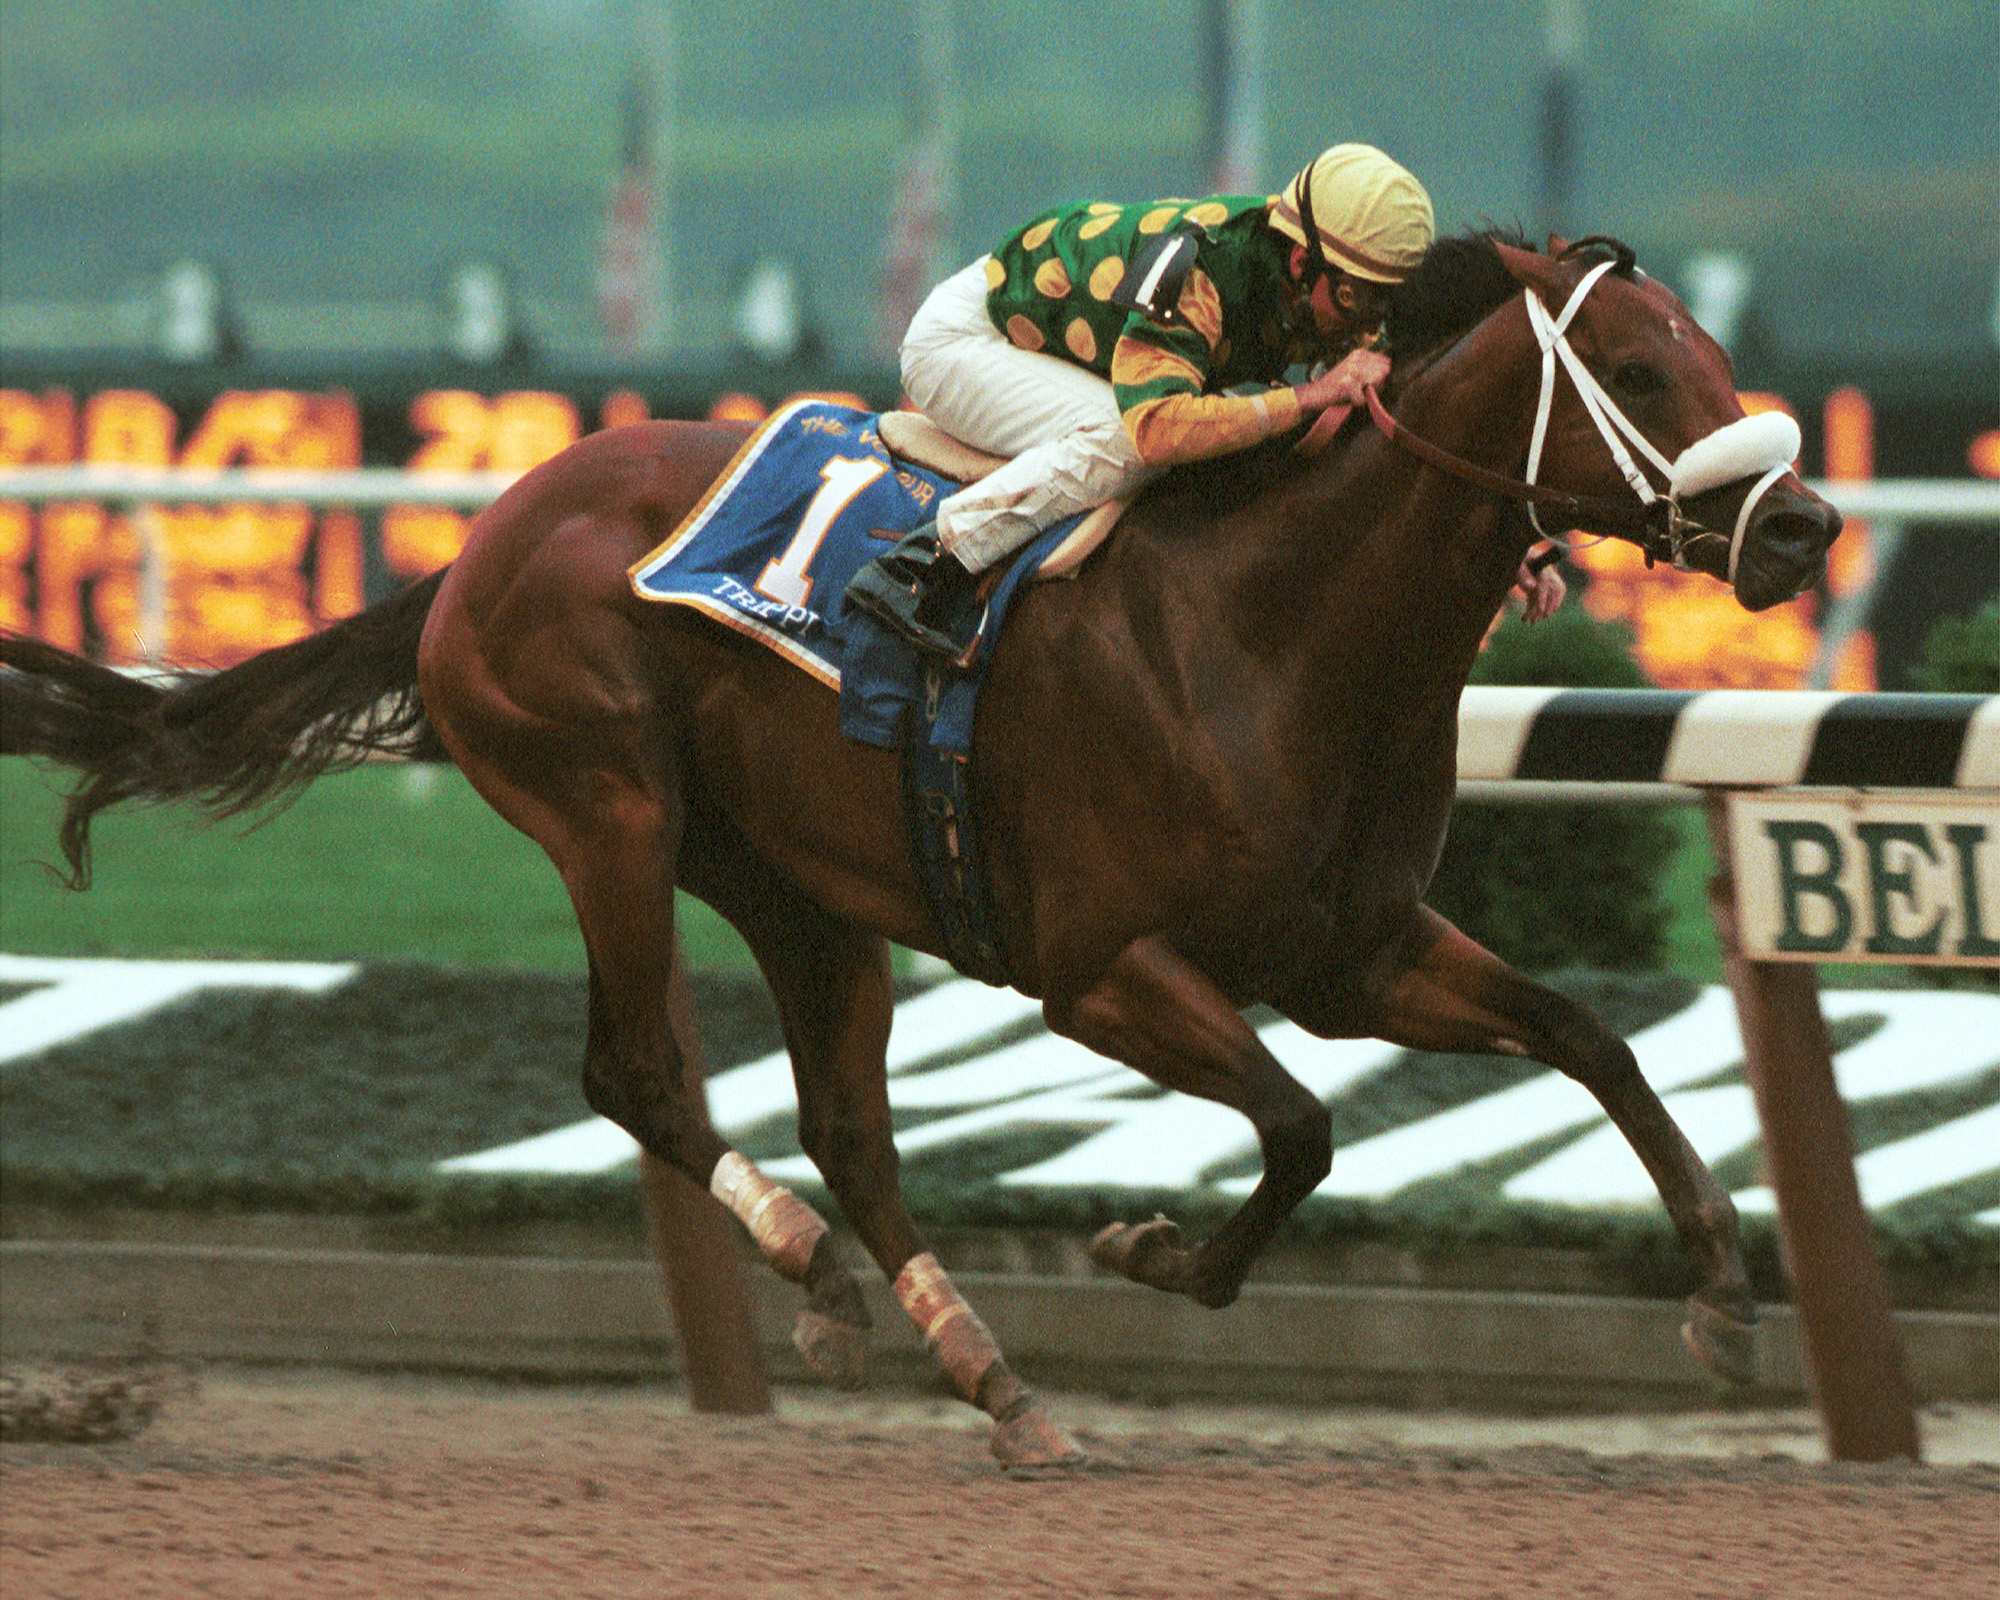 Grade 1 victory: Trippi winning the Vosburgh Stakes under Jerry Bailey at Belmont in 2000. Photo: Adam Coglianese